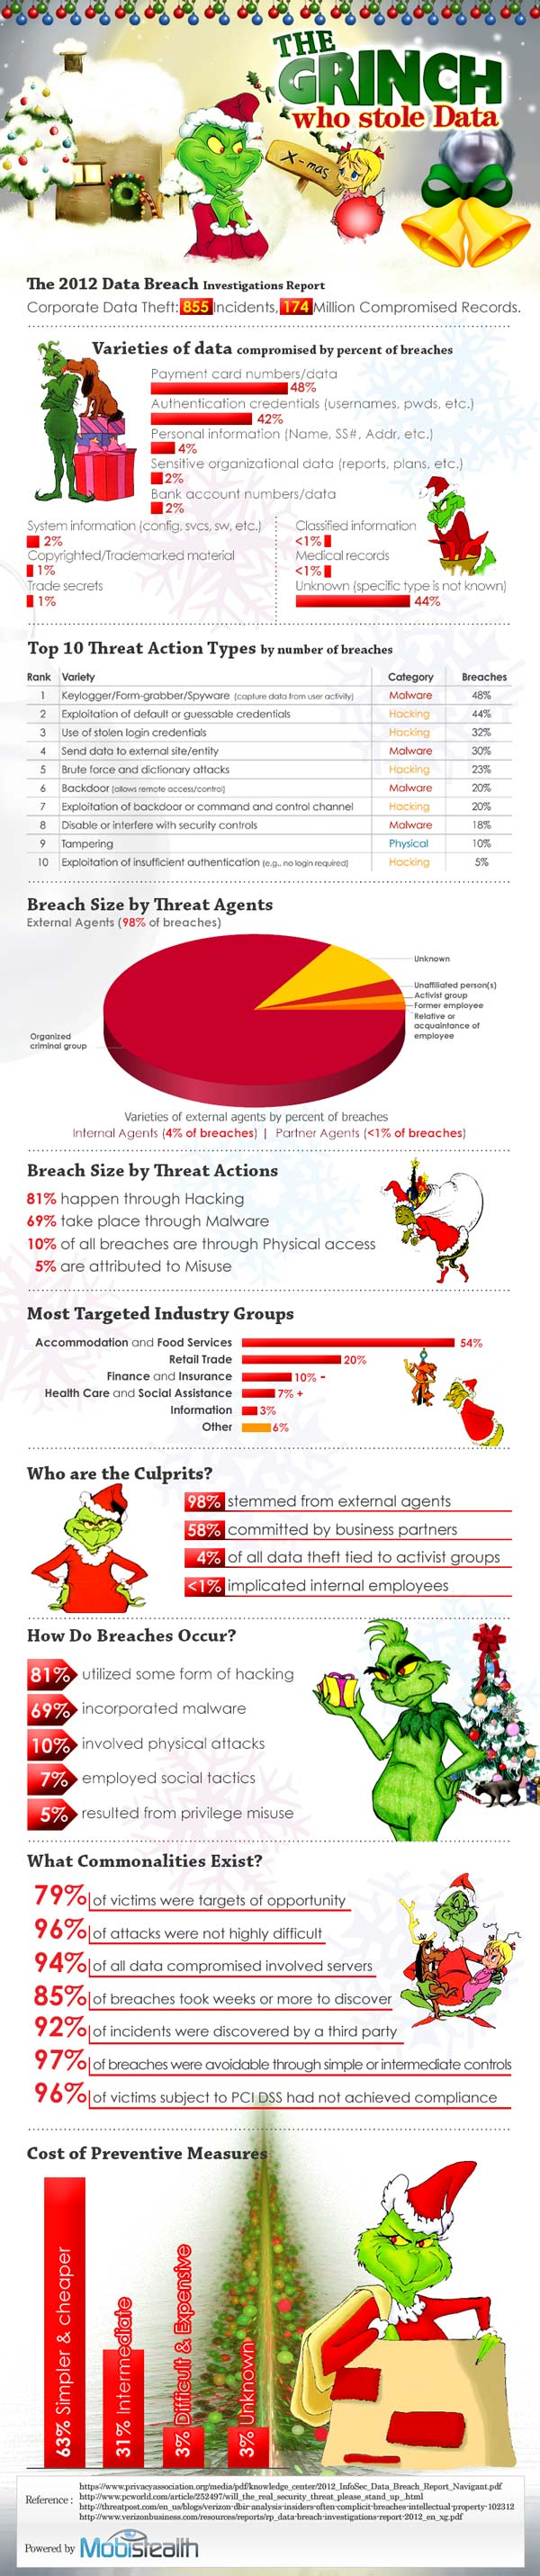 1grinch_data_theft